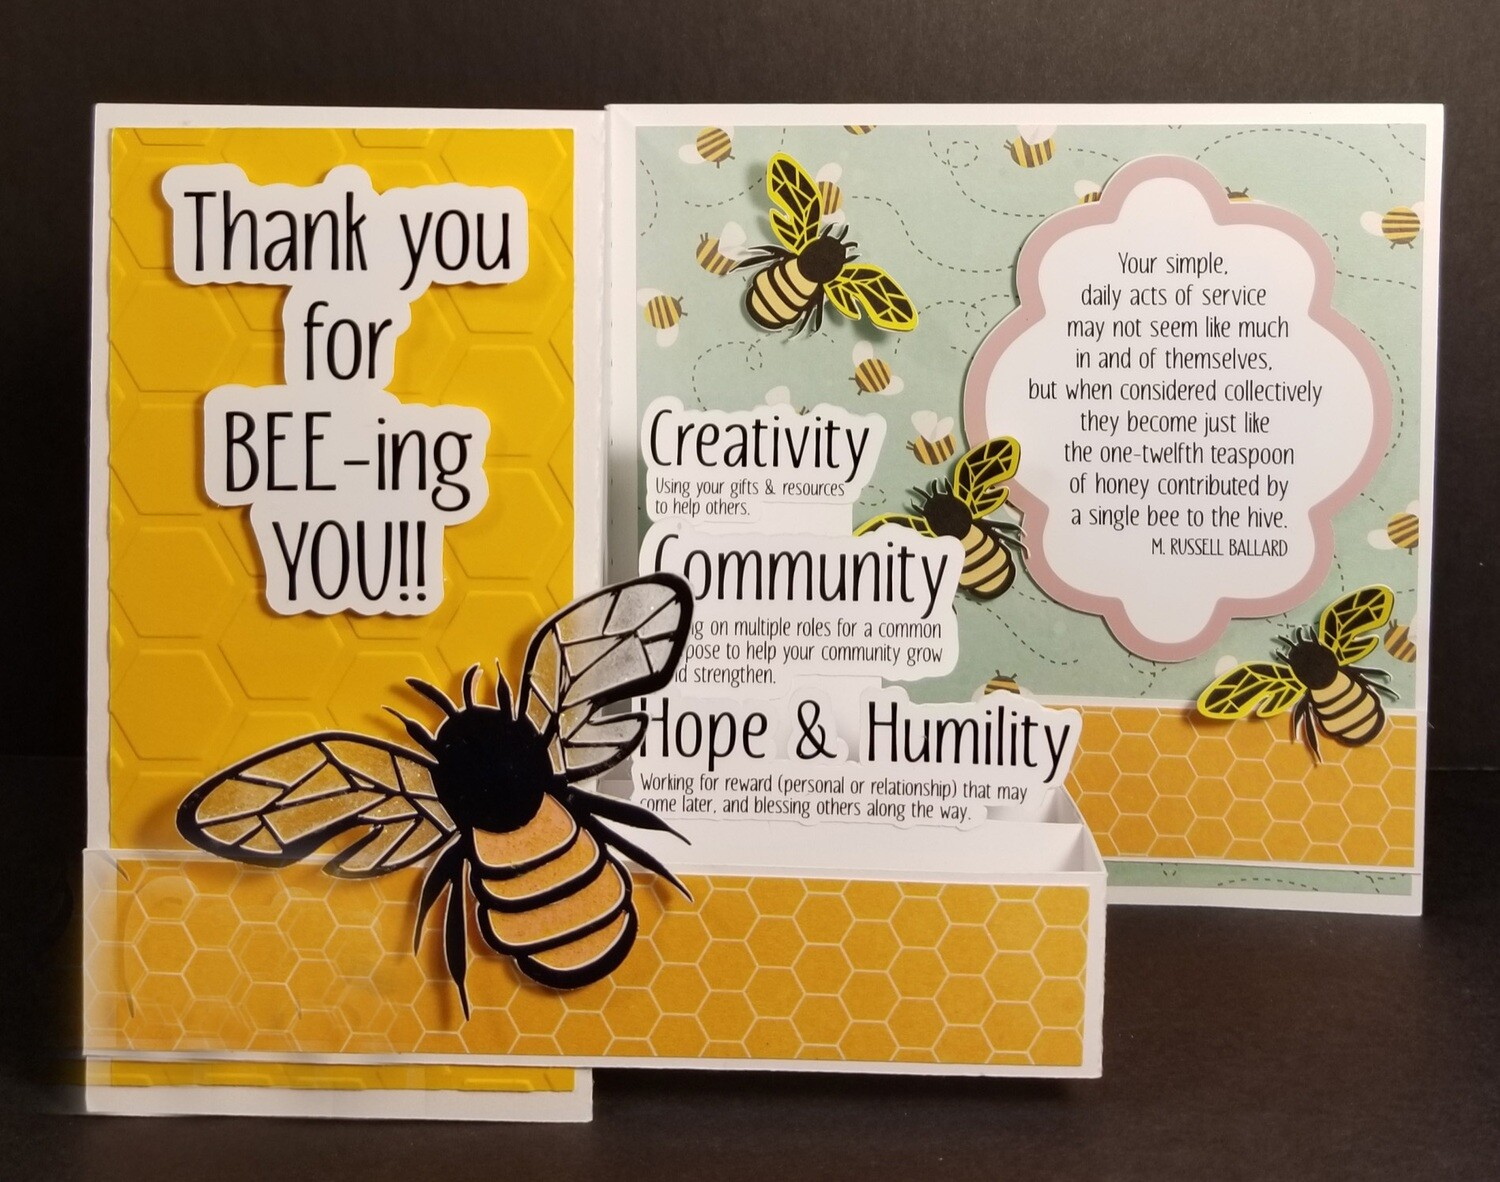 Thank you for BEE-ing You!